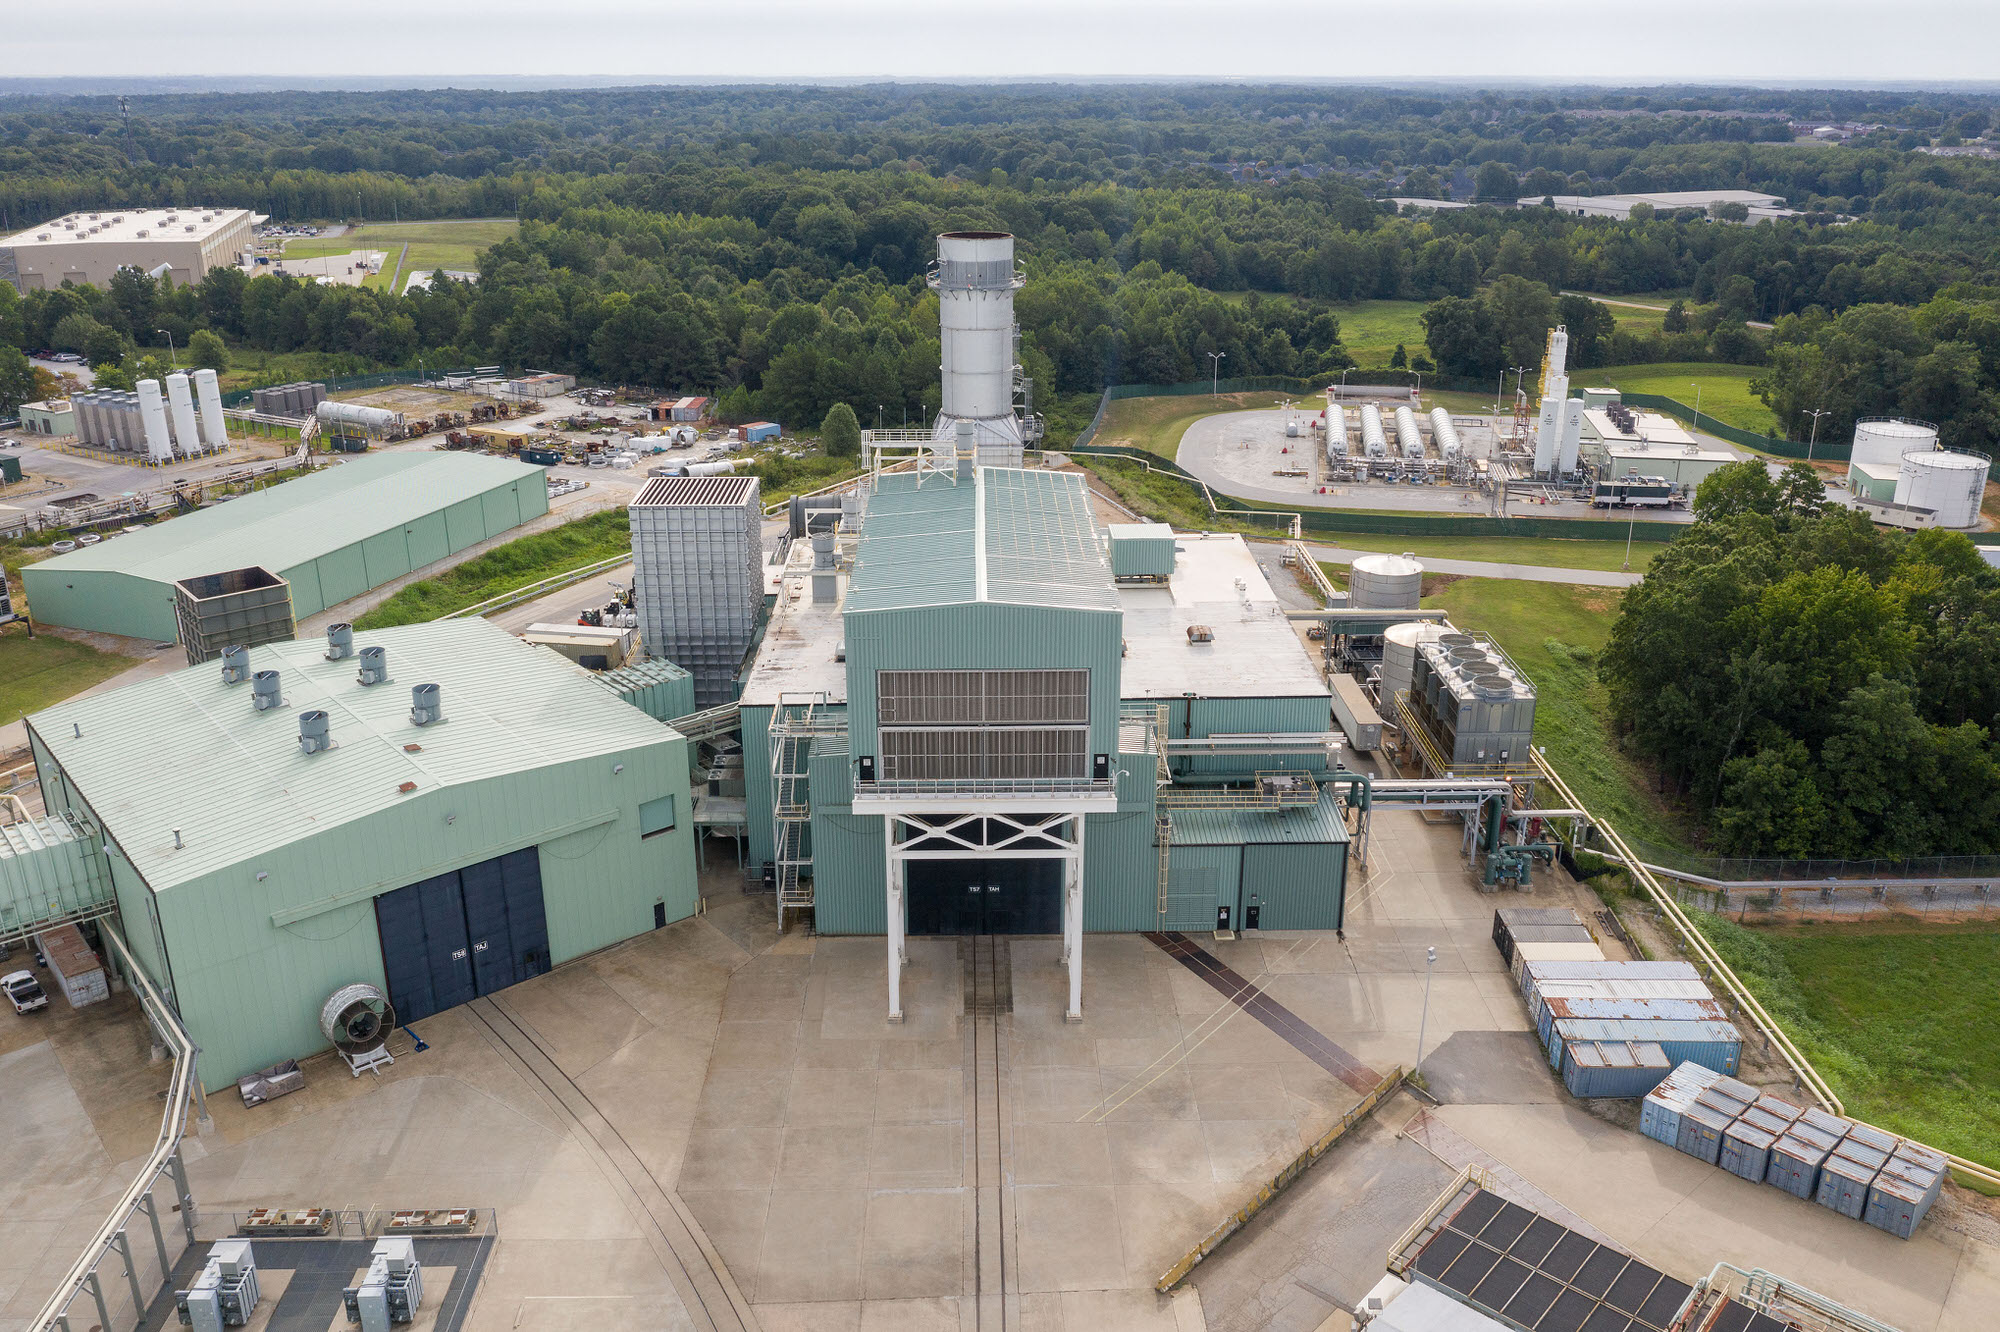 General Electric Gas Turbine testing facility in Greenville, South Carolina